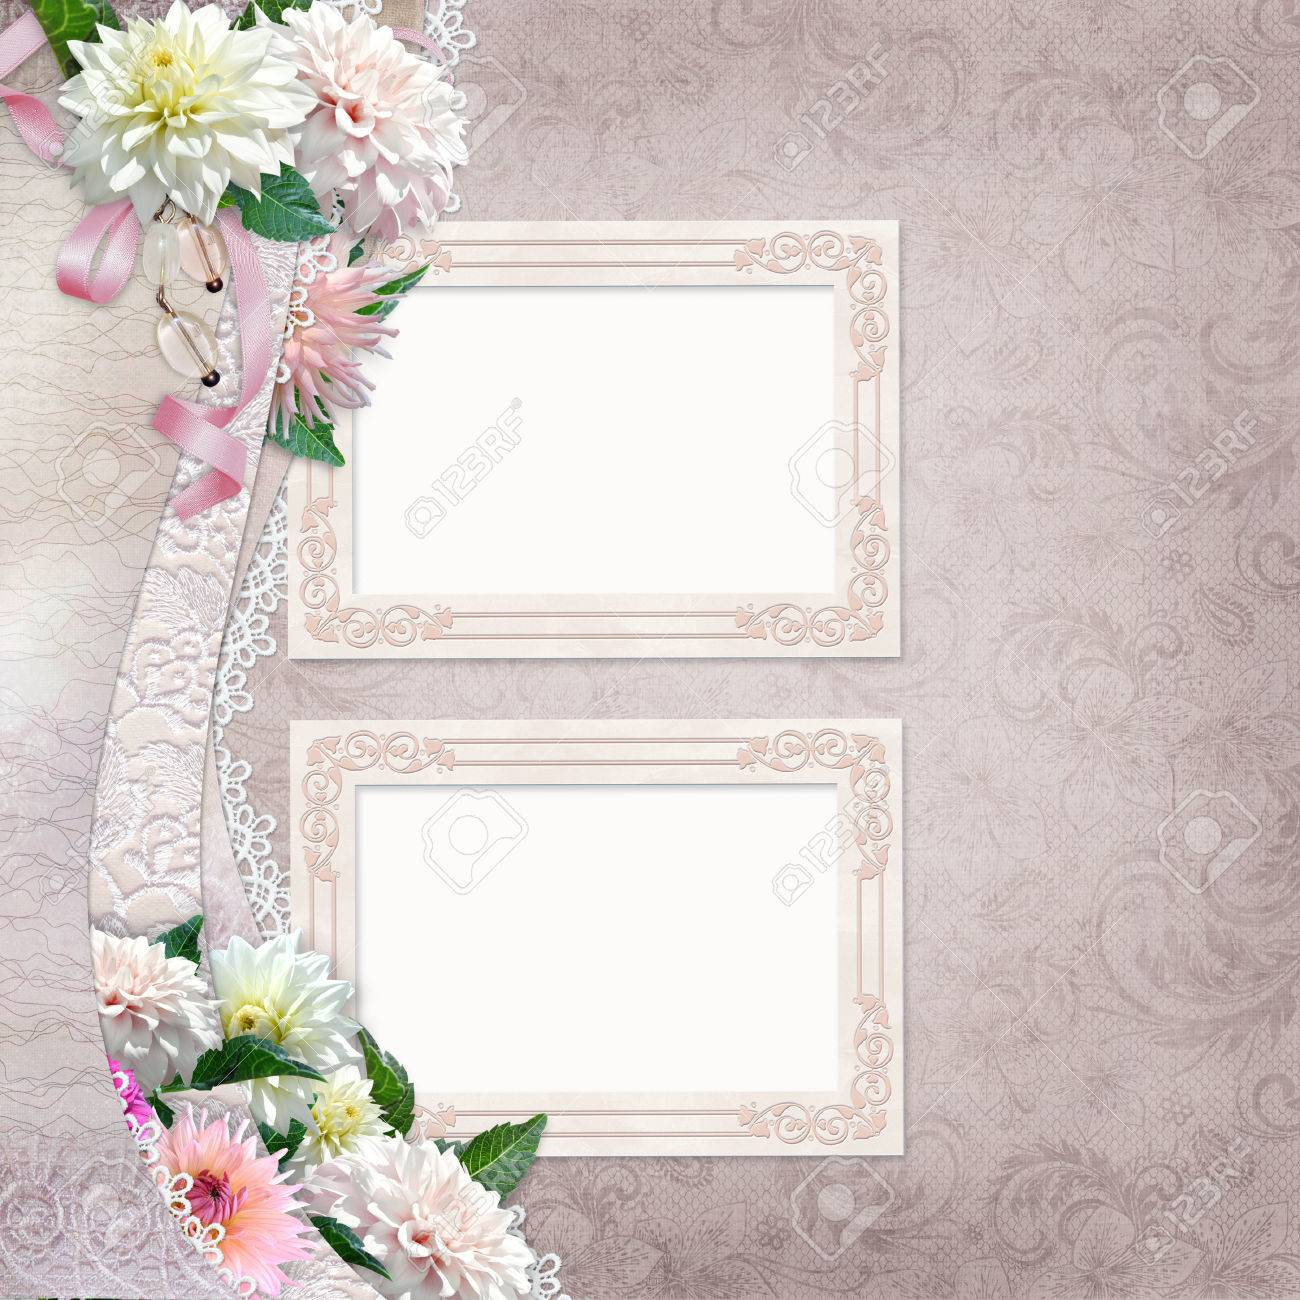 Beautiful Border With Flowers Lace And Frames On Vintage Background